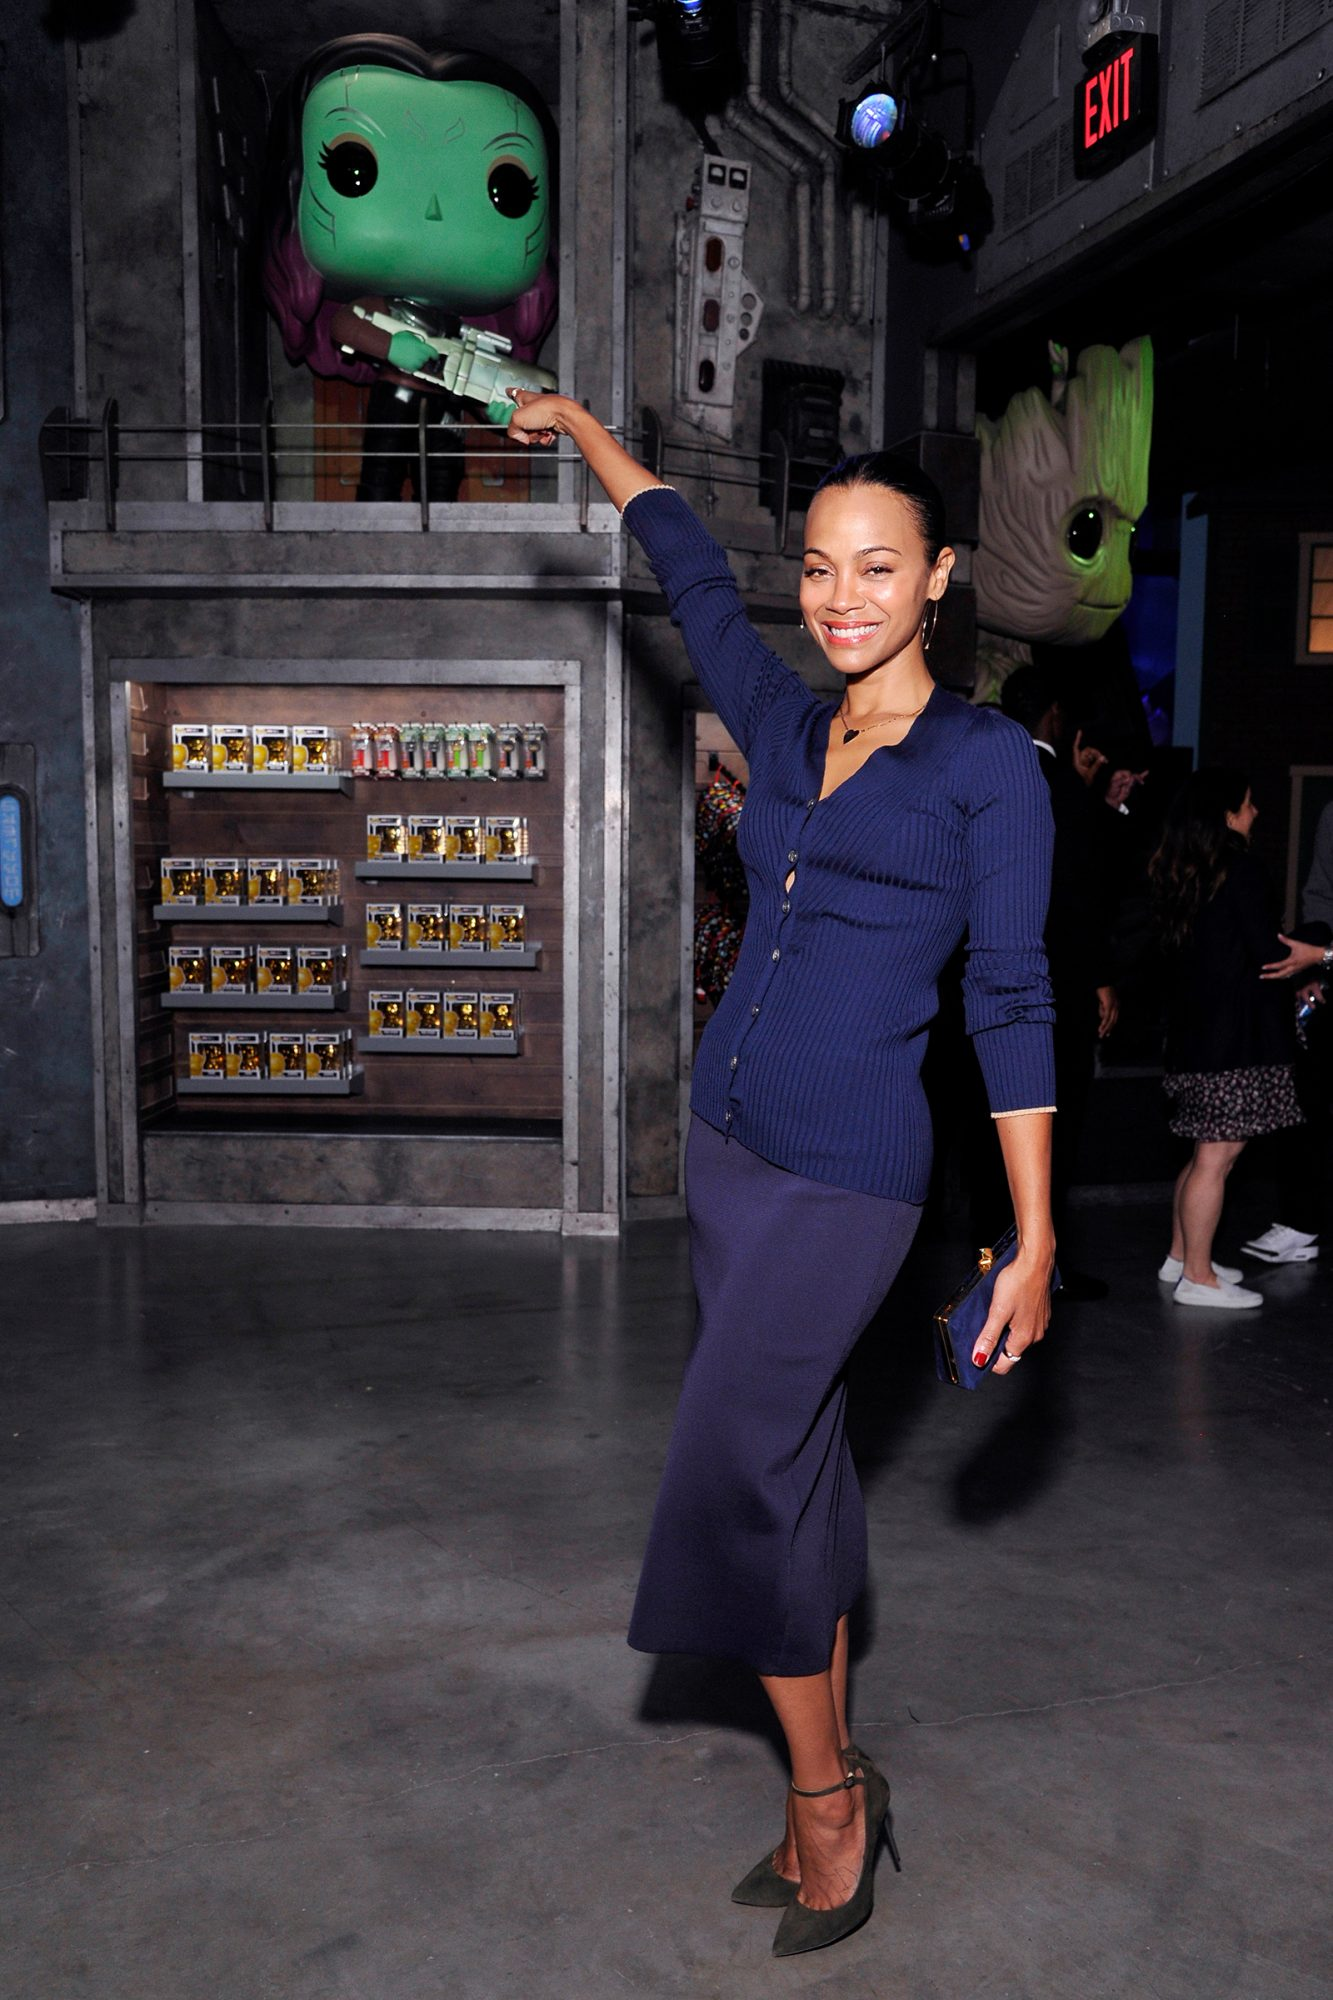 Zoe Saldana attends the Funko Hollywood VIP Preview Event at Funko Hollywood on November 07, 2019 in Hollywood